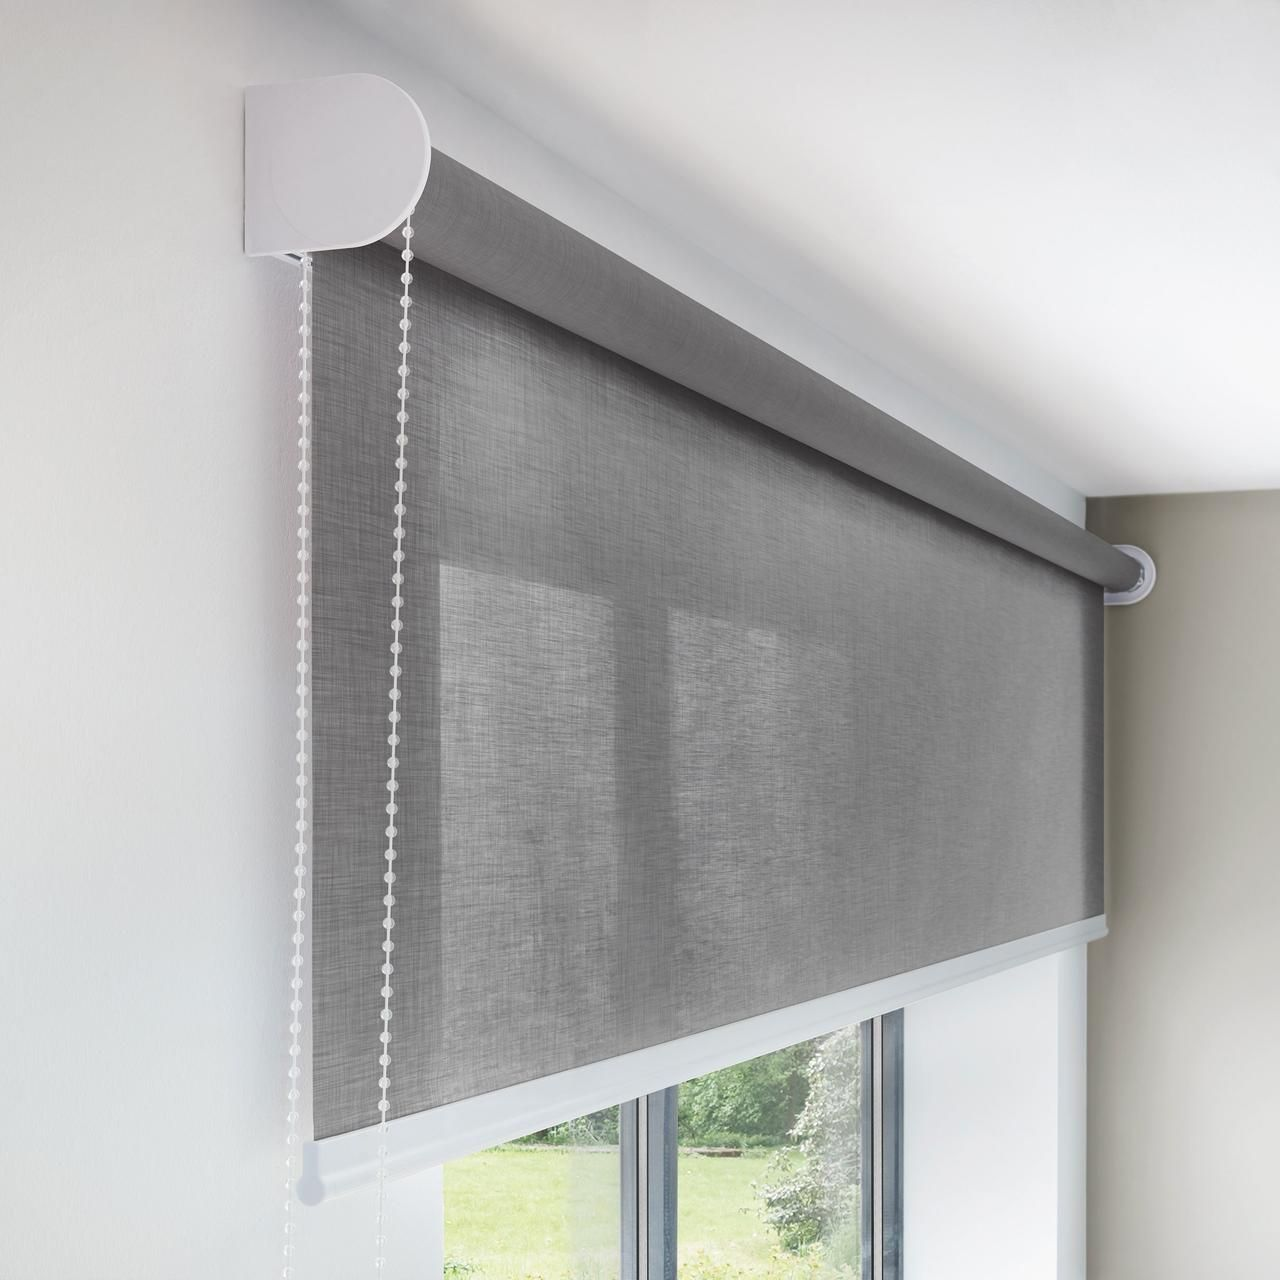 131 Reference Of Curtain Simple Roller Blinds In 2020 Blinds Design Roller Blinds Curtains